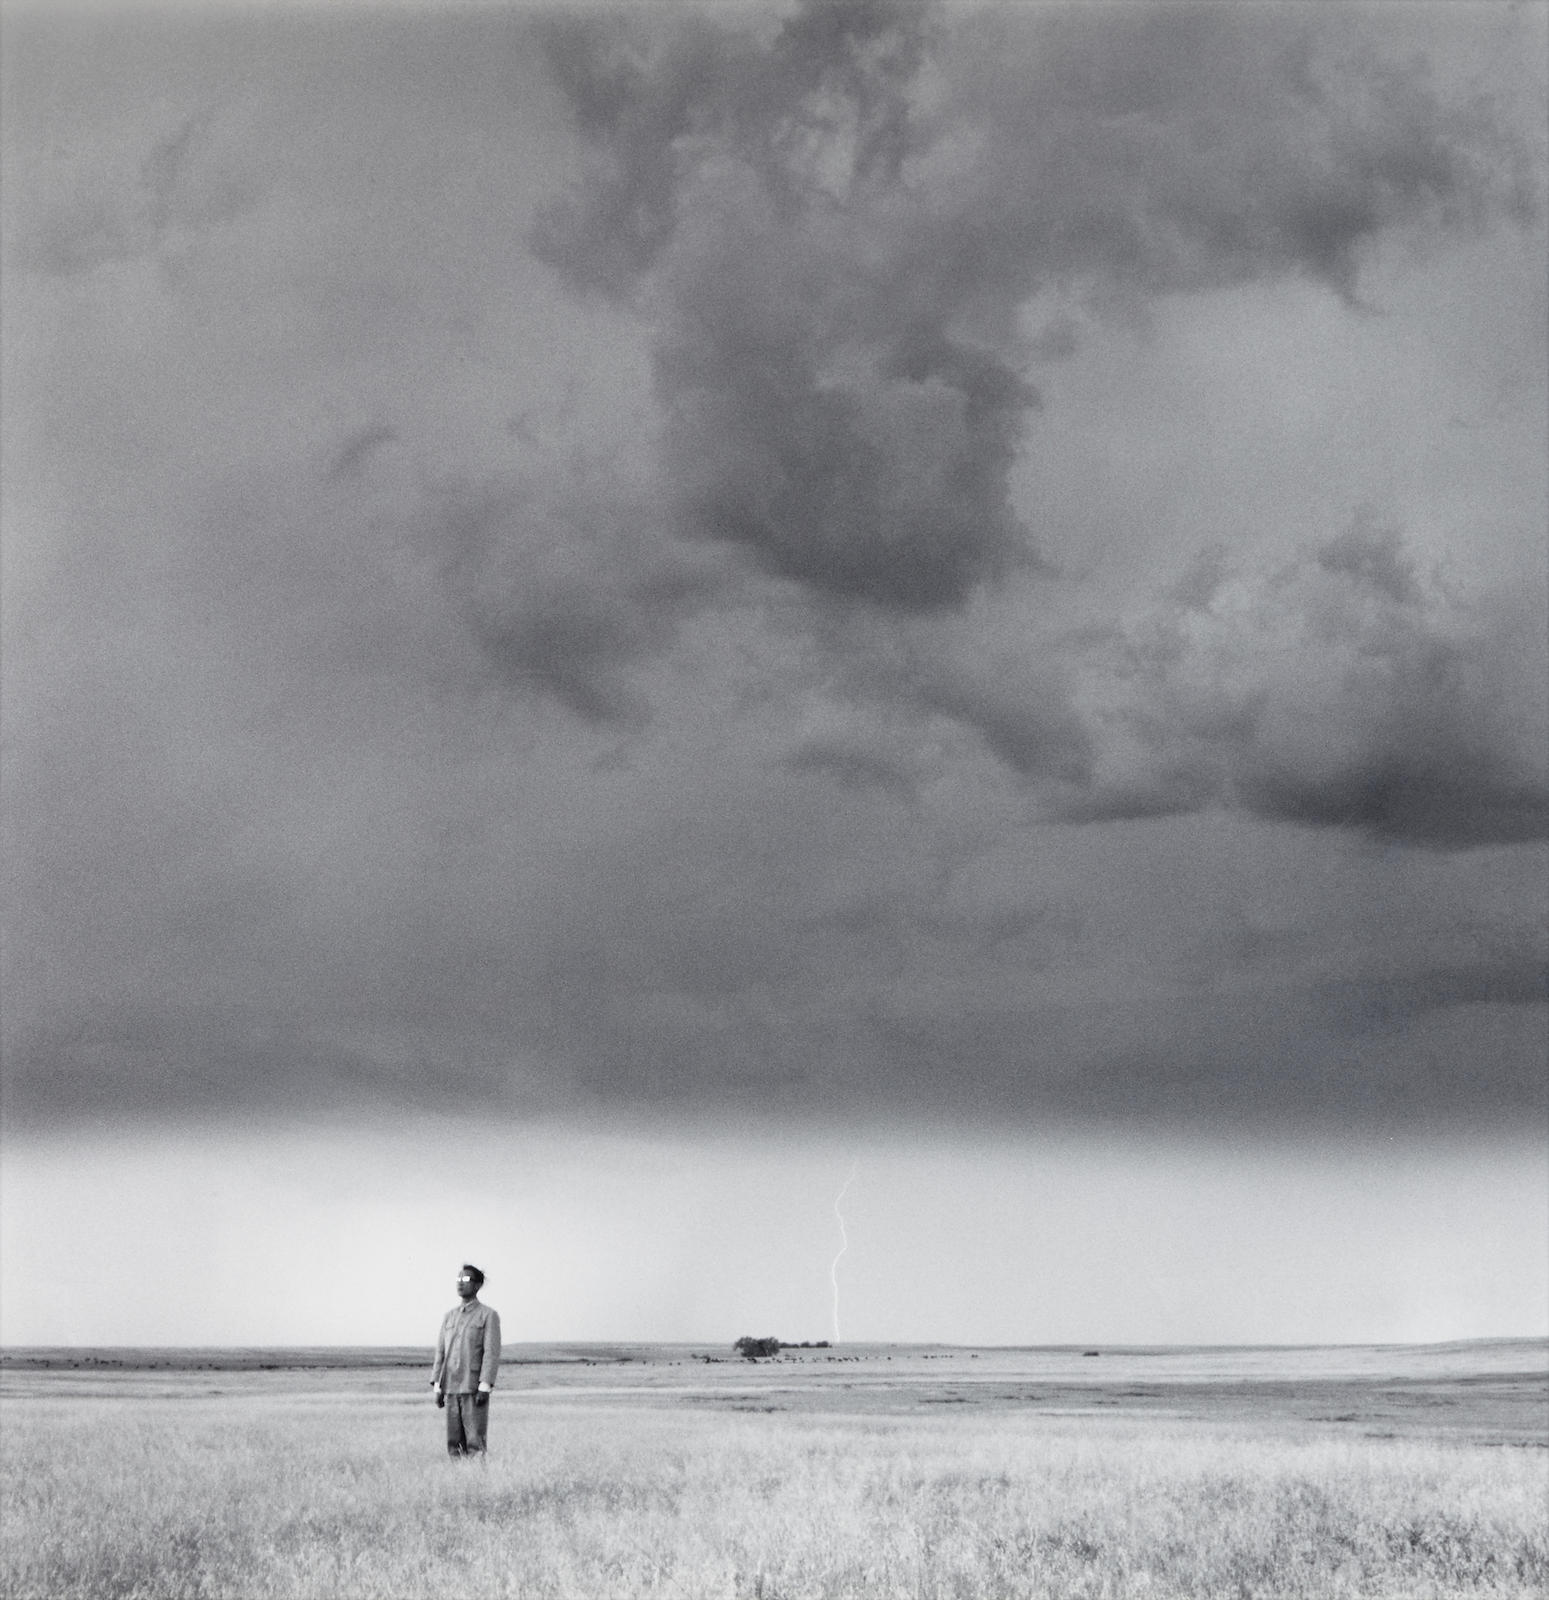 Tseng Kwong Chi-Lightning Field, South Dakota-1986